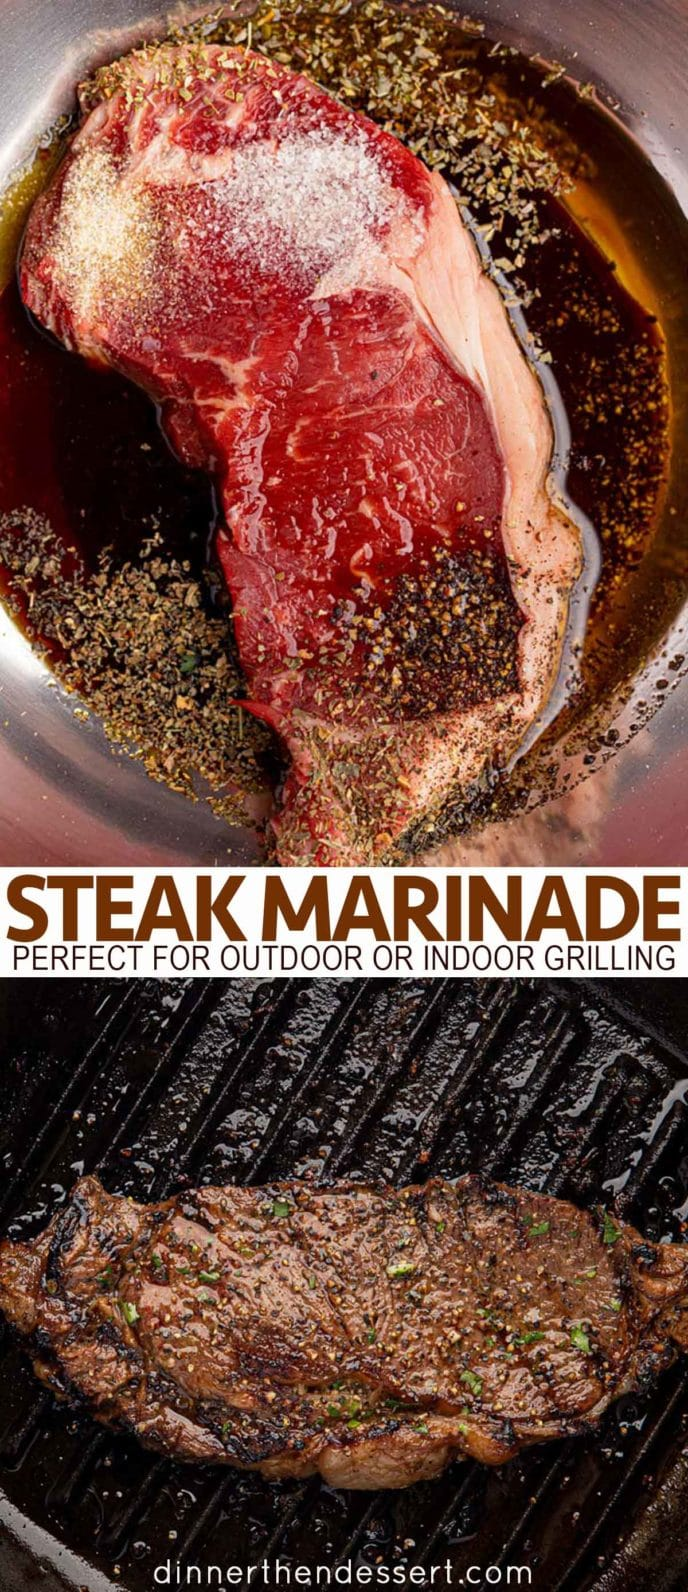 Steak Marinade from above